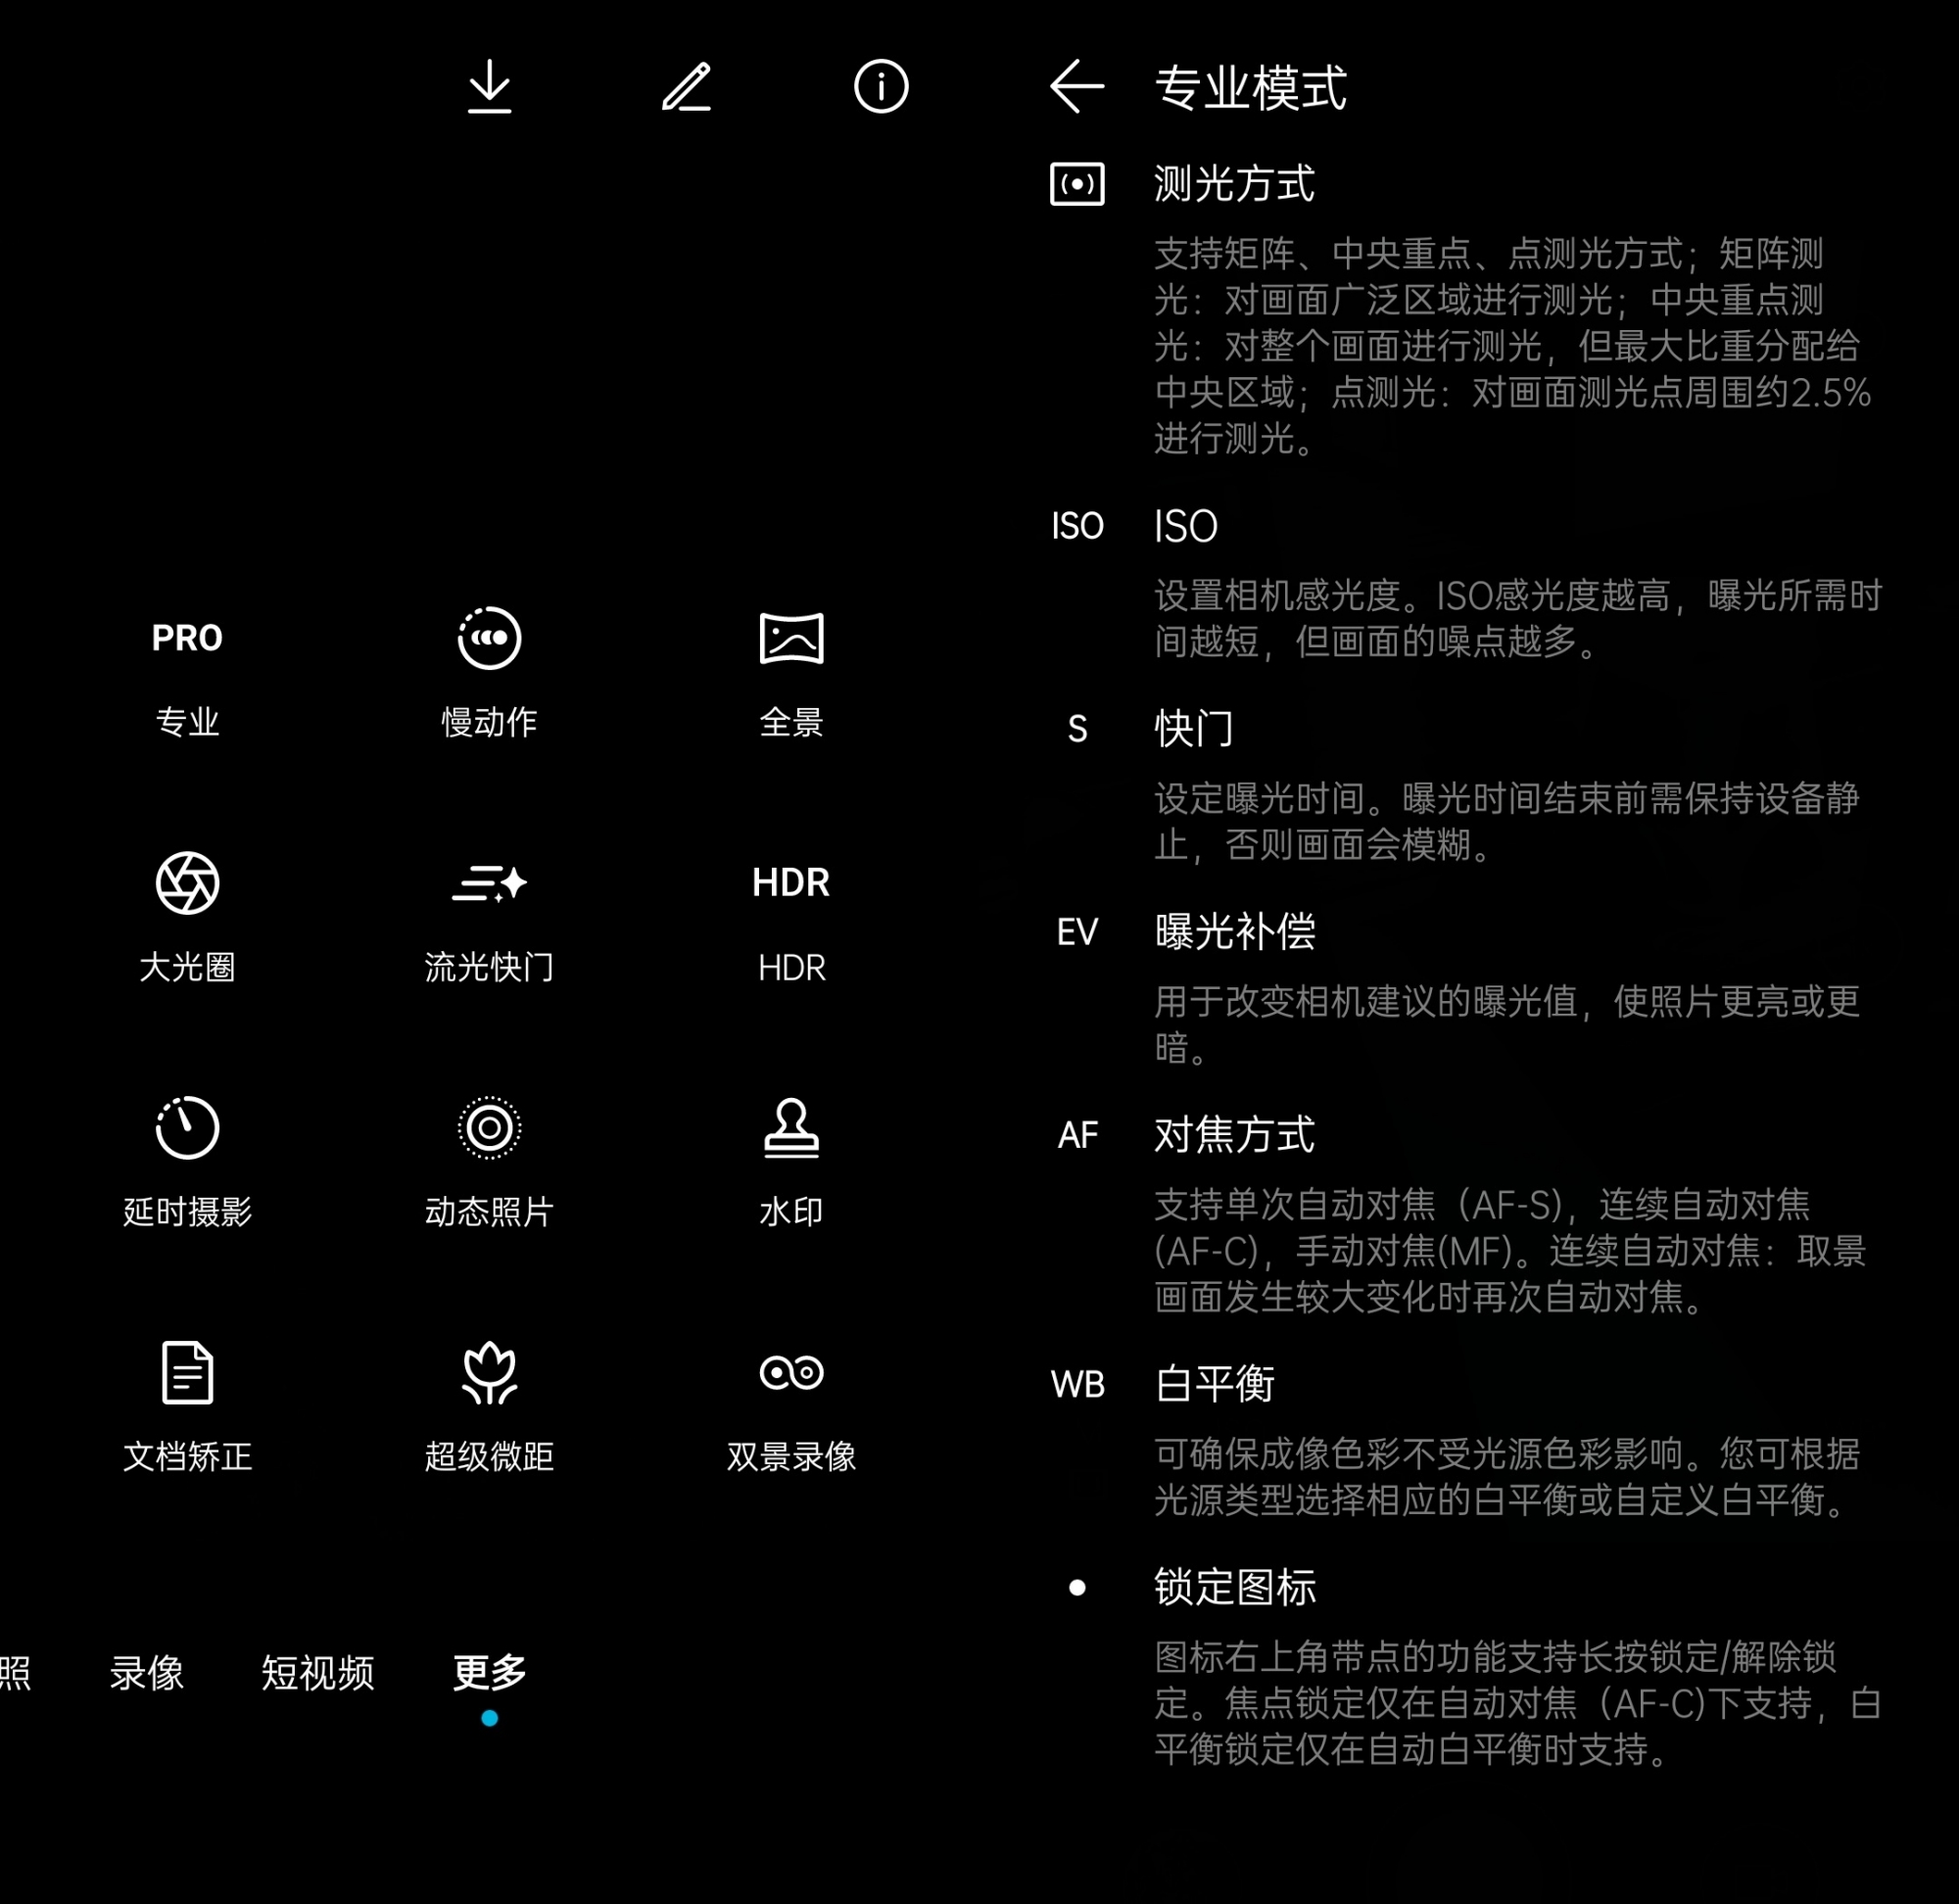 Screenshot_20191221_215115_com.huawei.camera.jpg